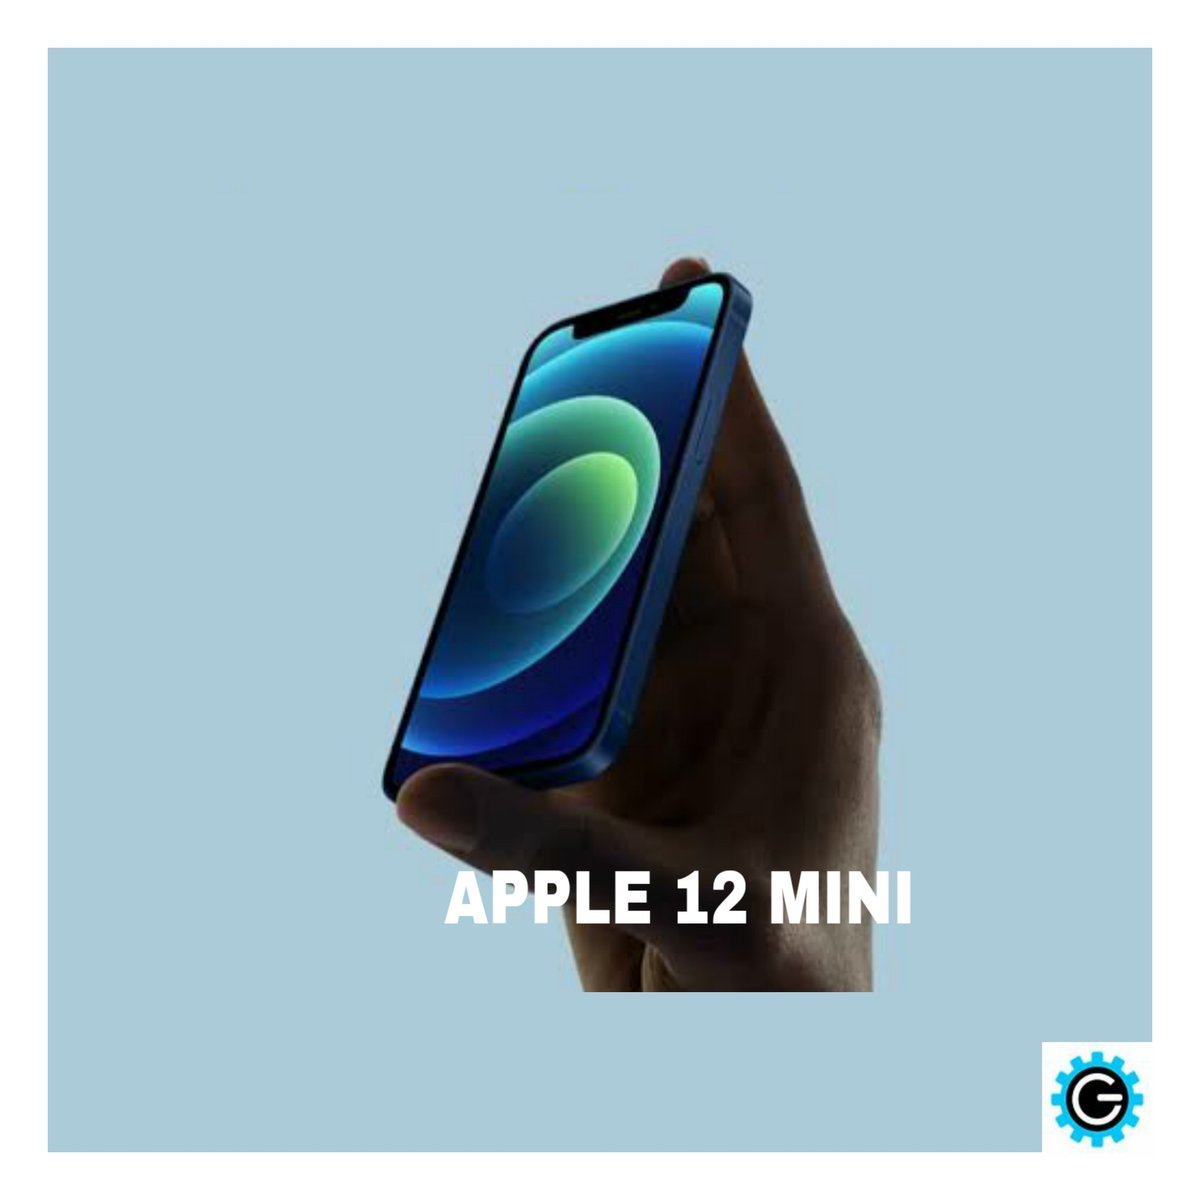 Many reports from Jan'2020 have indicated Apple is cutting iPhone 12 mini production due to low demand. Instead, Apple is increasing manufacturing iPhone 12 Pro.  . #iphone12 #iphone12mini #ios #iphone #apple #smartphone #technology #mobile #pro #tech #plus #sundayvibes